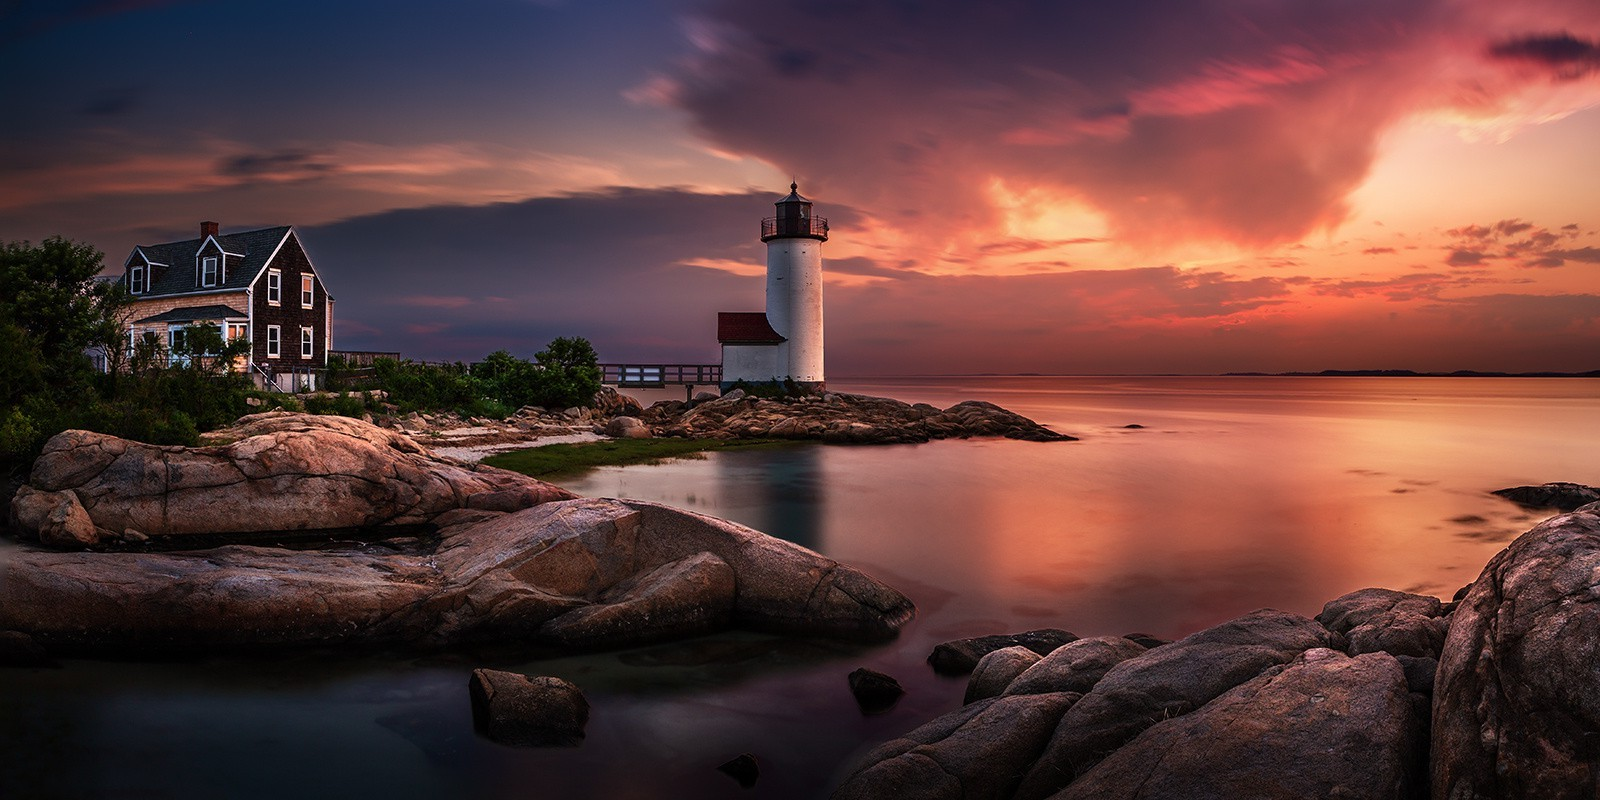 Cloudy Weather Hd Wallpapers Nature Landscape Sunset Lighthouse Massachusetts Sky